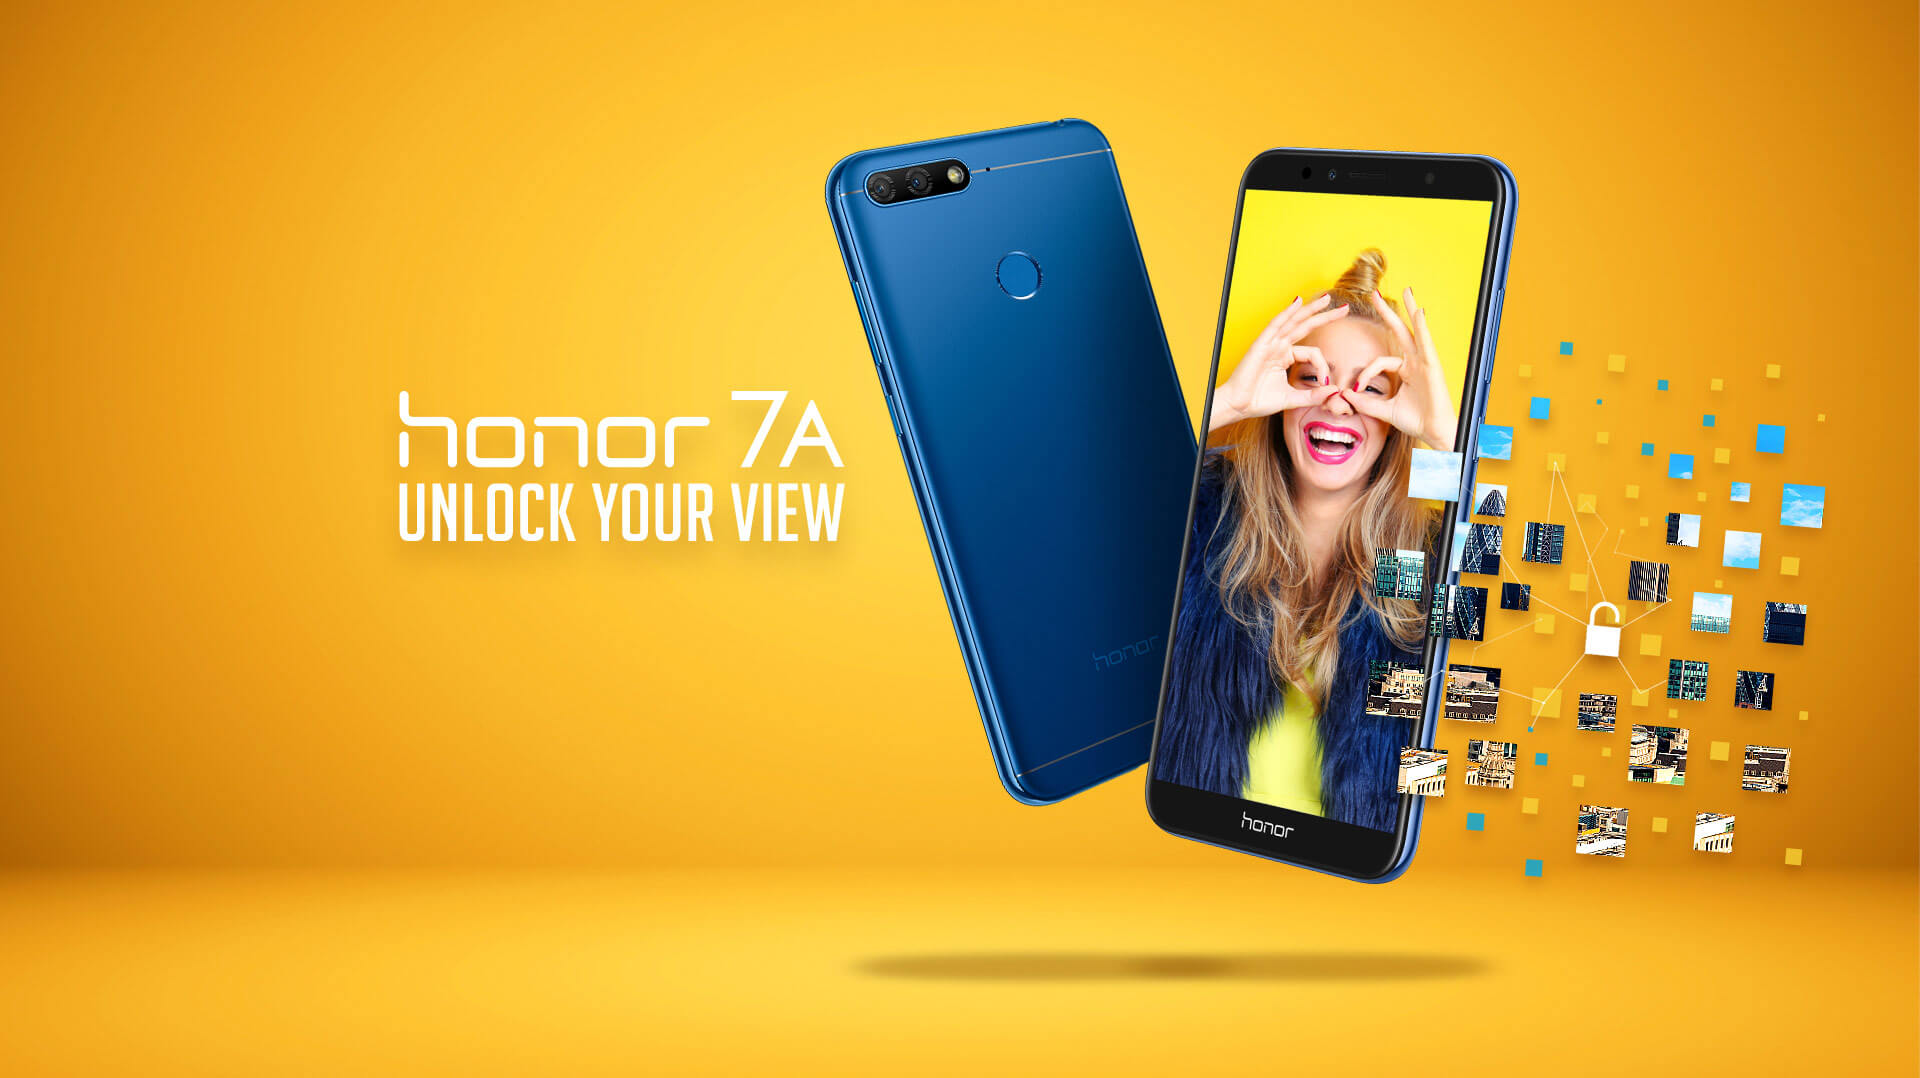 image_honor7a